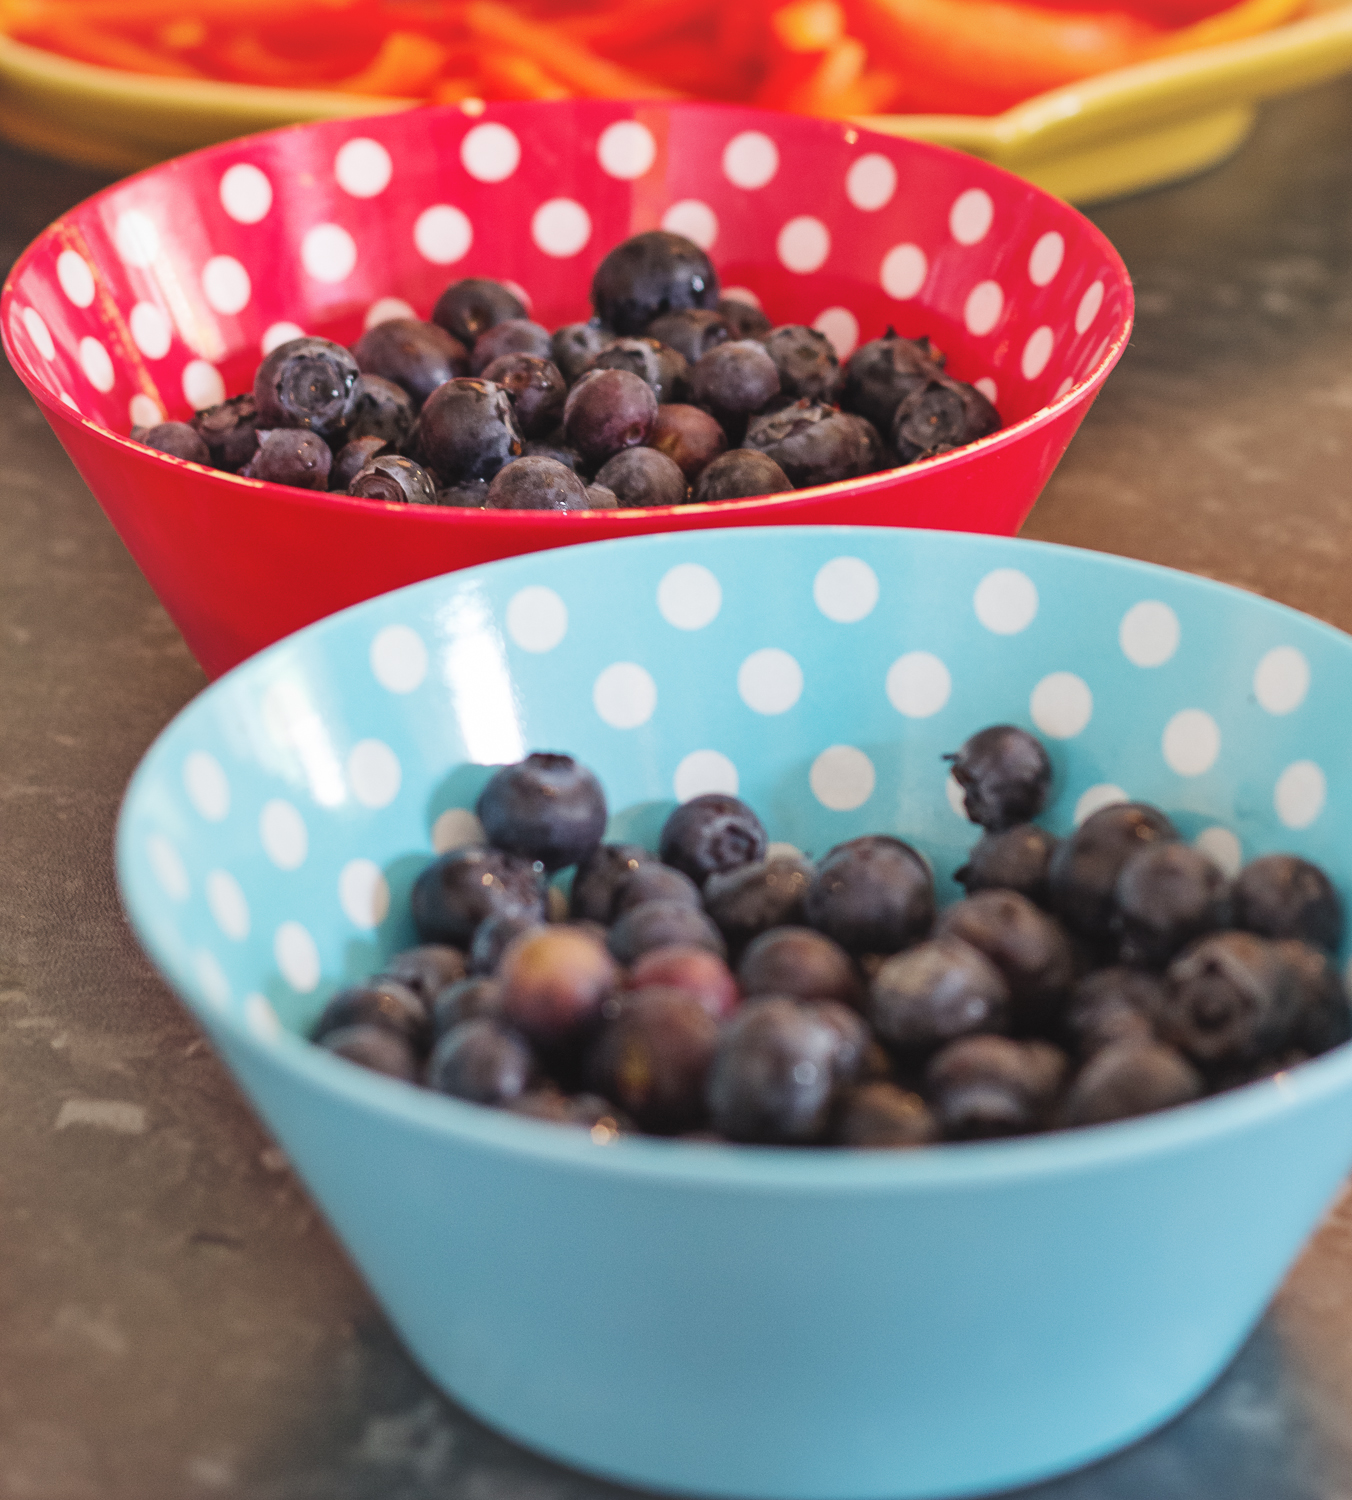 A close up photograph of healthy children's party food - blueberries in polka dot red and blue bowls